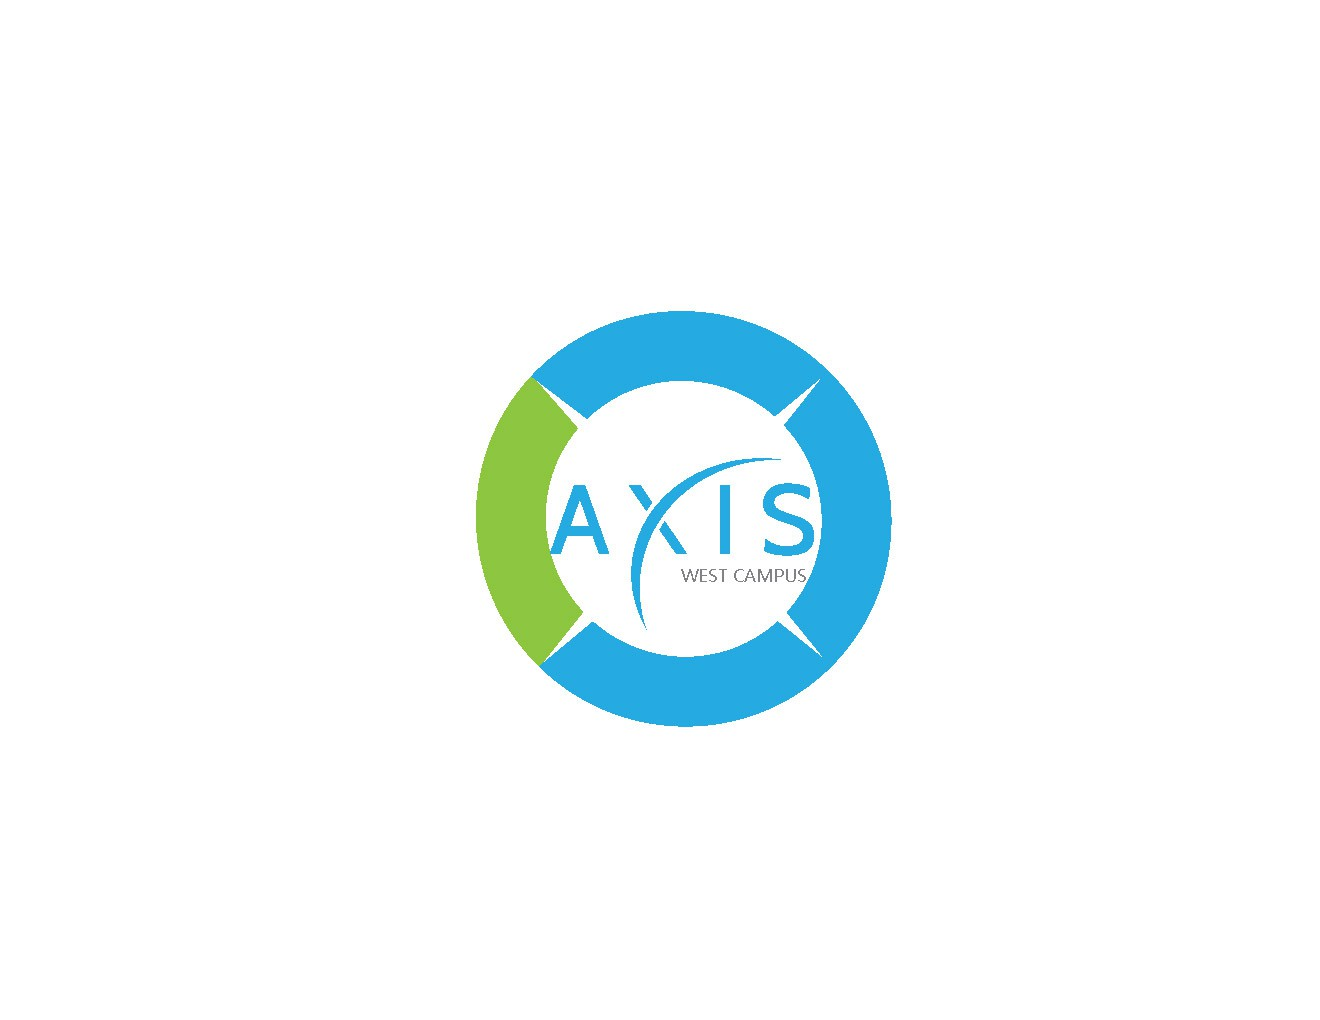 New logo wanted for Axis West Campus